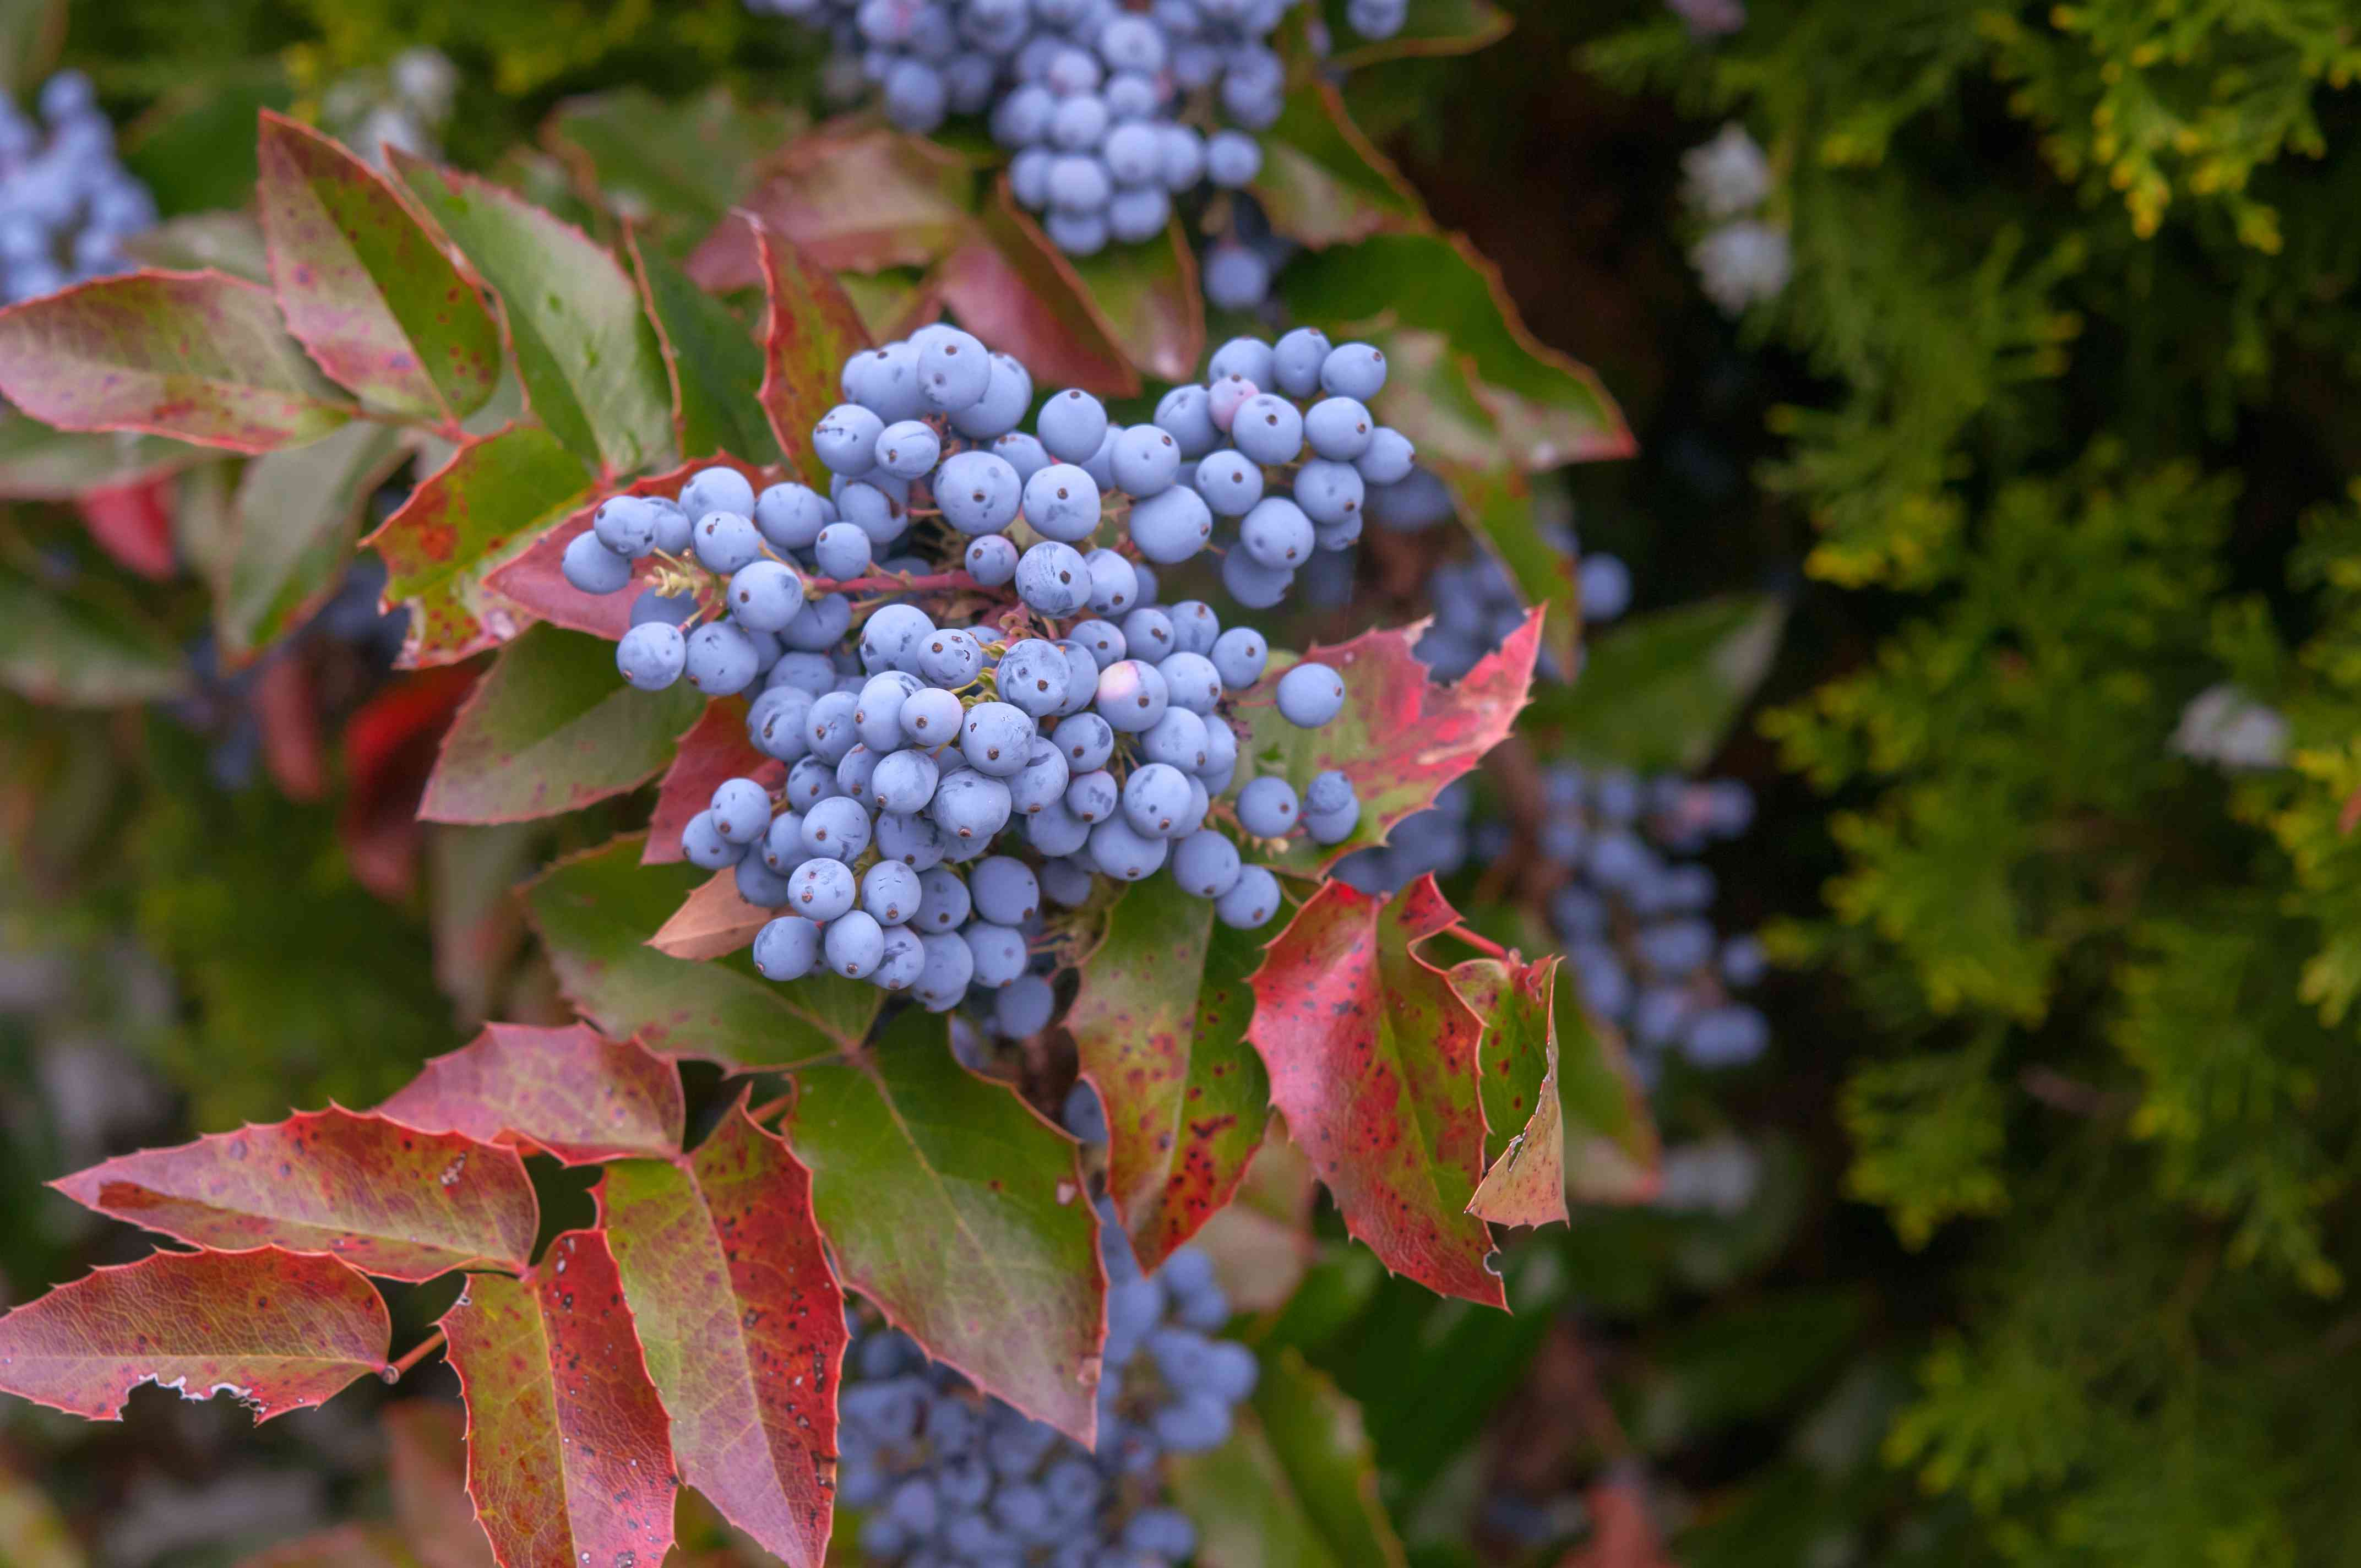 Oregon grape shrub with blue grapes on branch with red and green leaves